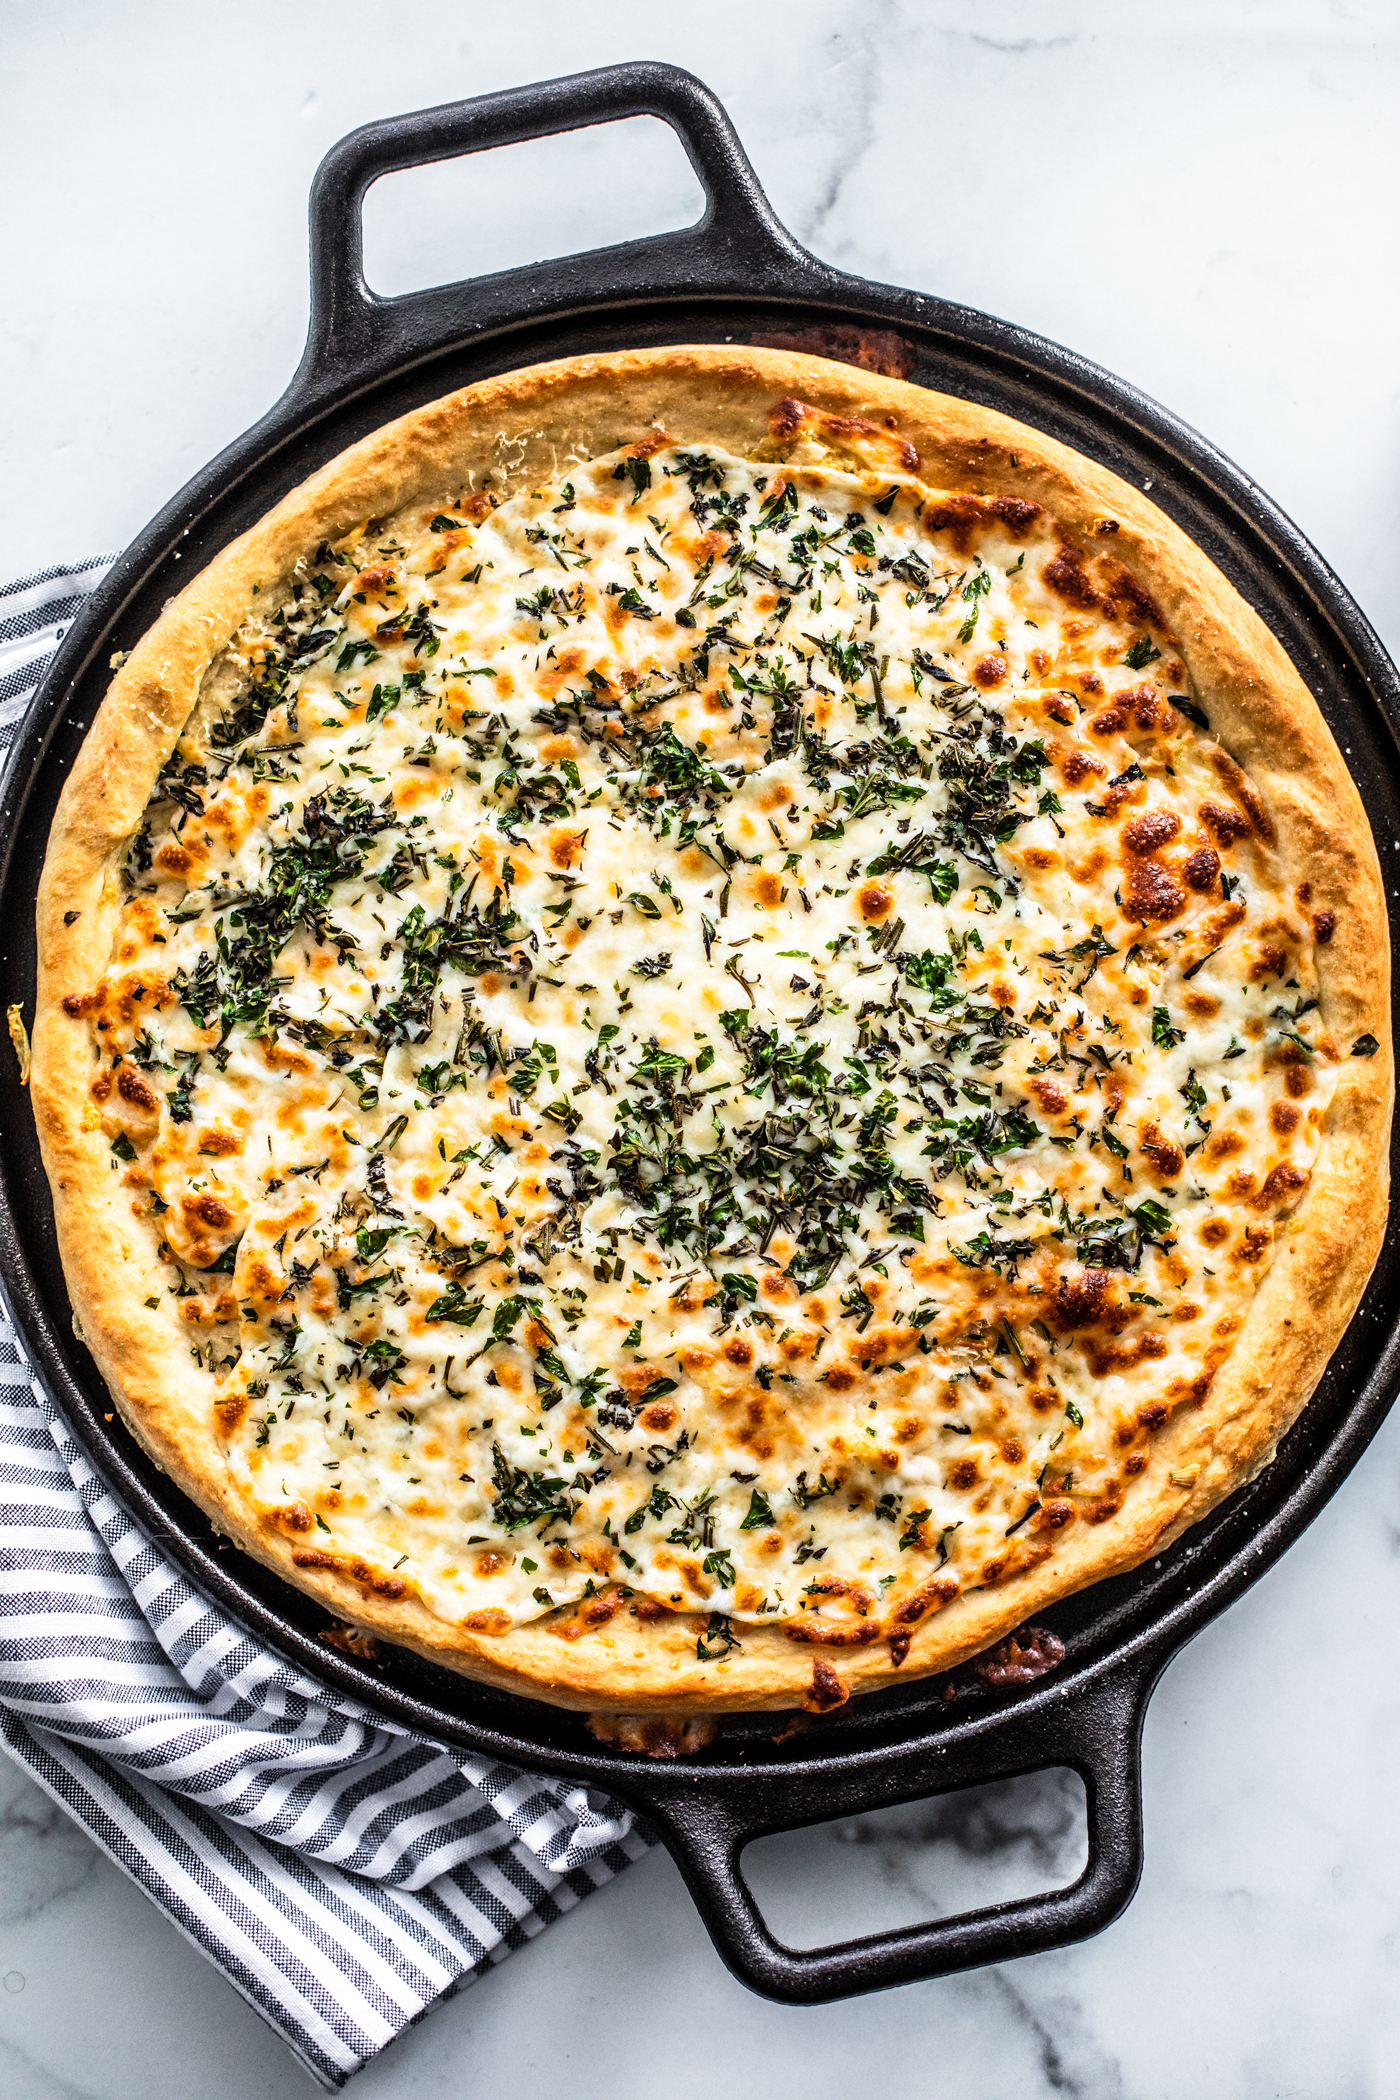 Overhead shot of cooked herb and garlic cheese pizza in cast iron pizza pan.